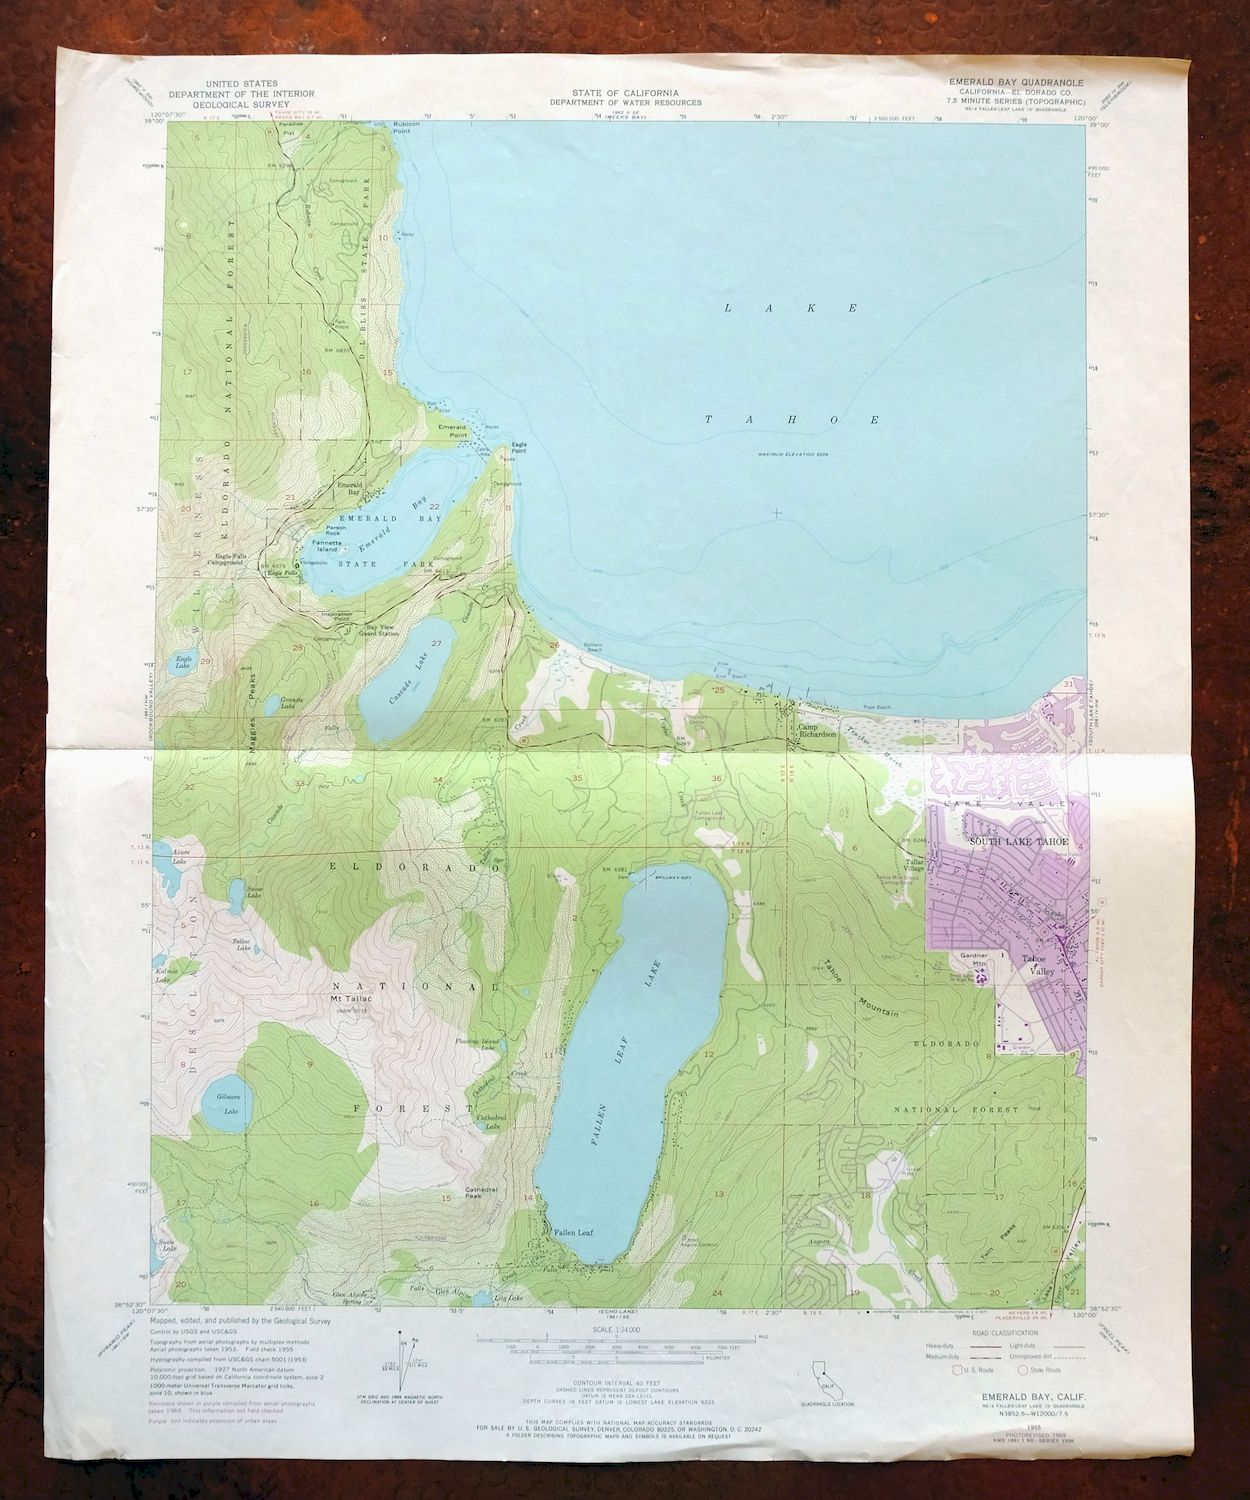 Emerald Bay California Vintage Usgs Topo Map South